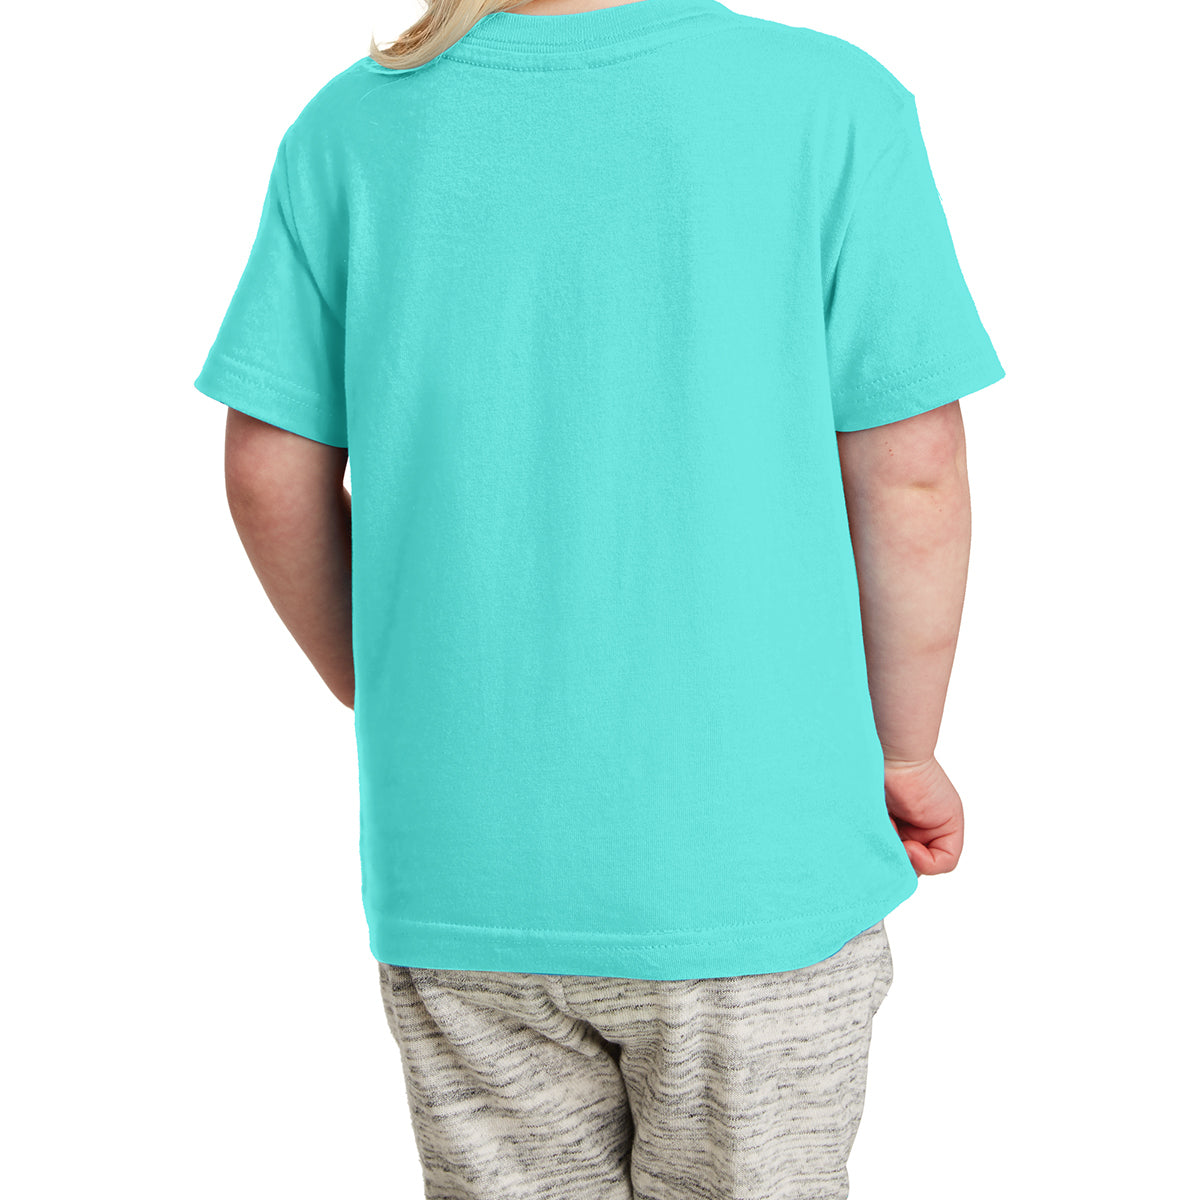 Toddler Fine Jersey Tee - Caribbean